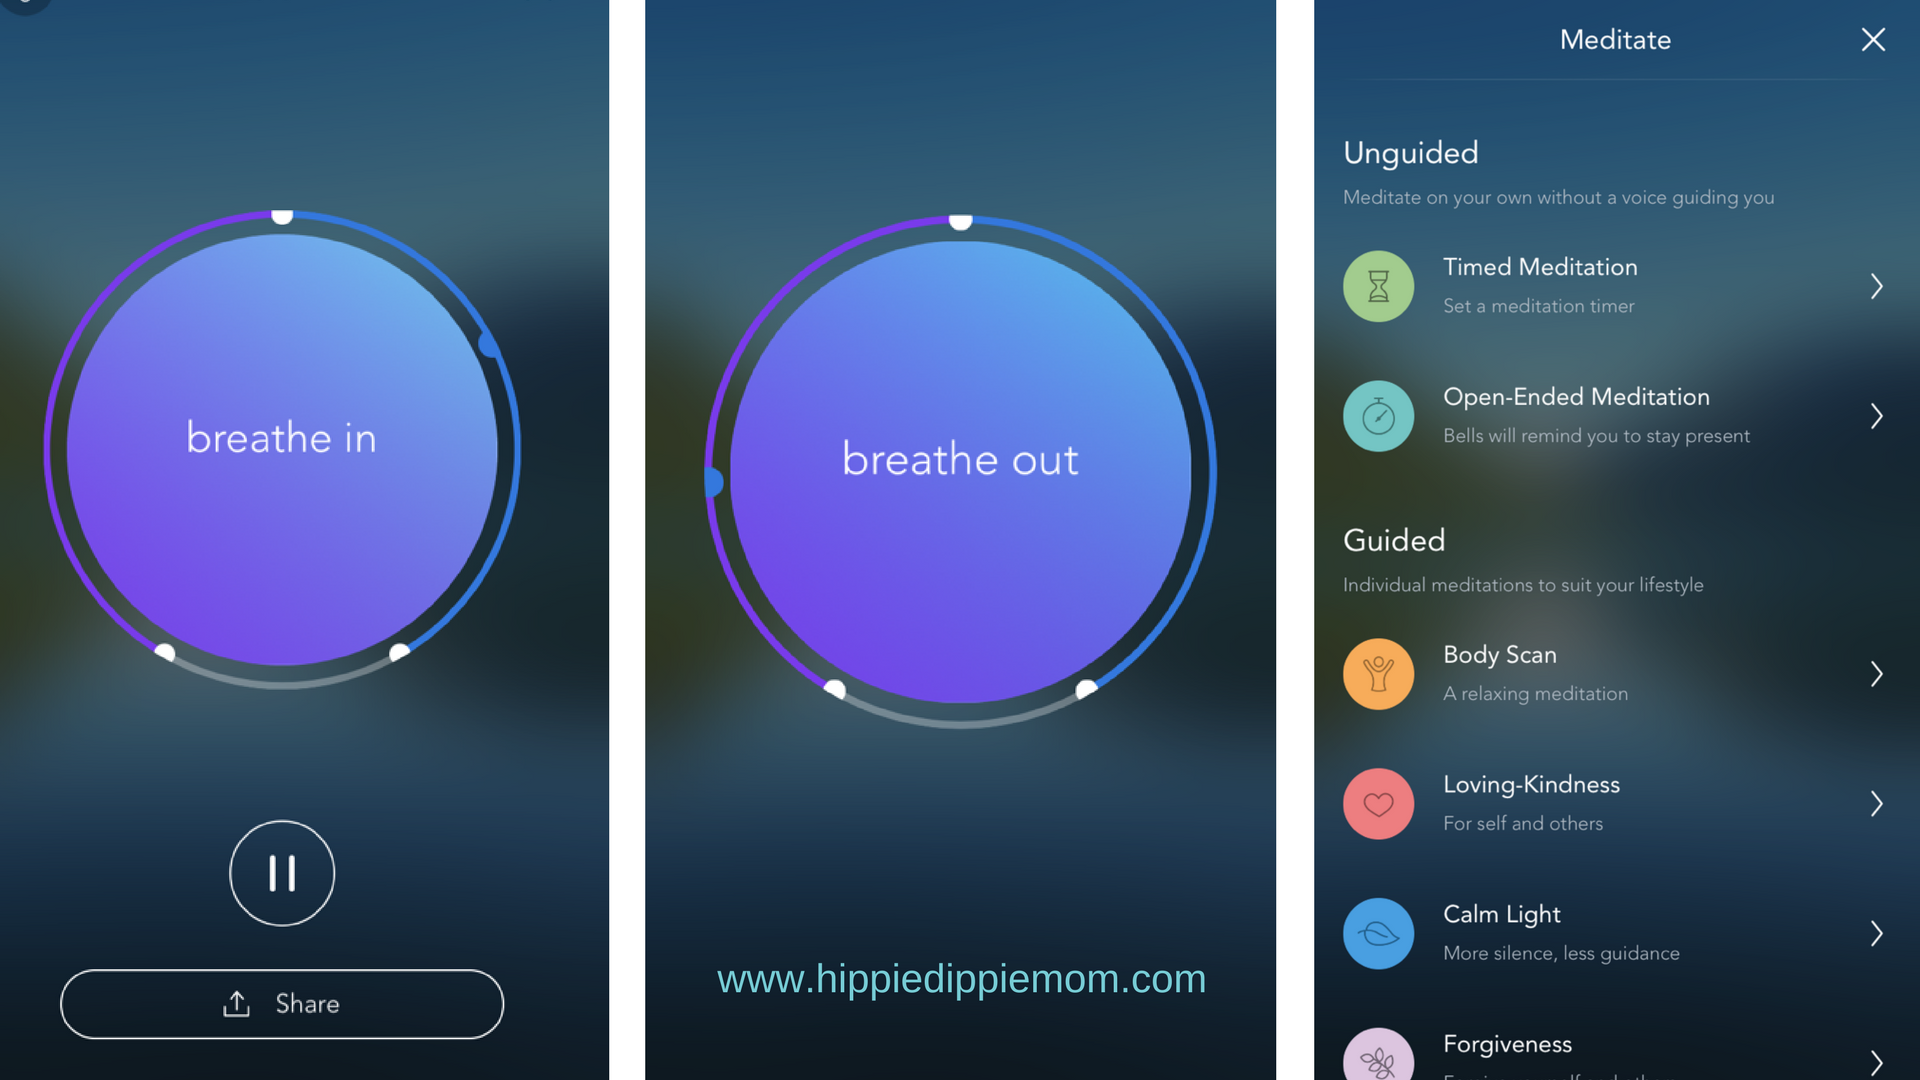 These are a couple screenshots from the calm app. the first two are of the area that helps you take deep breaths, the last shot is of some of the offered meditations.